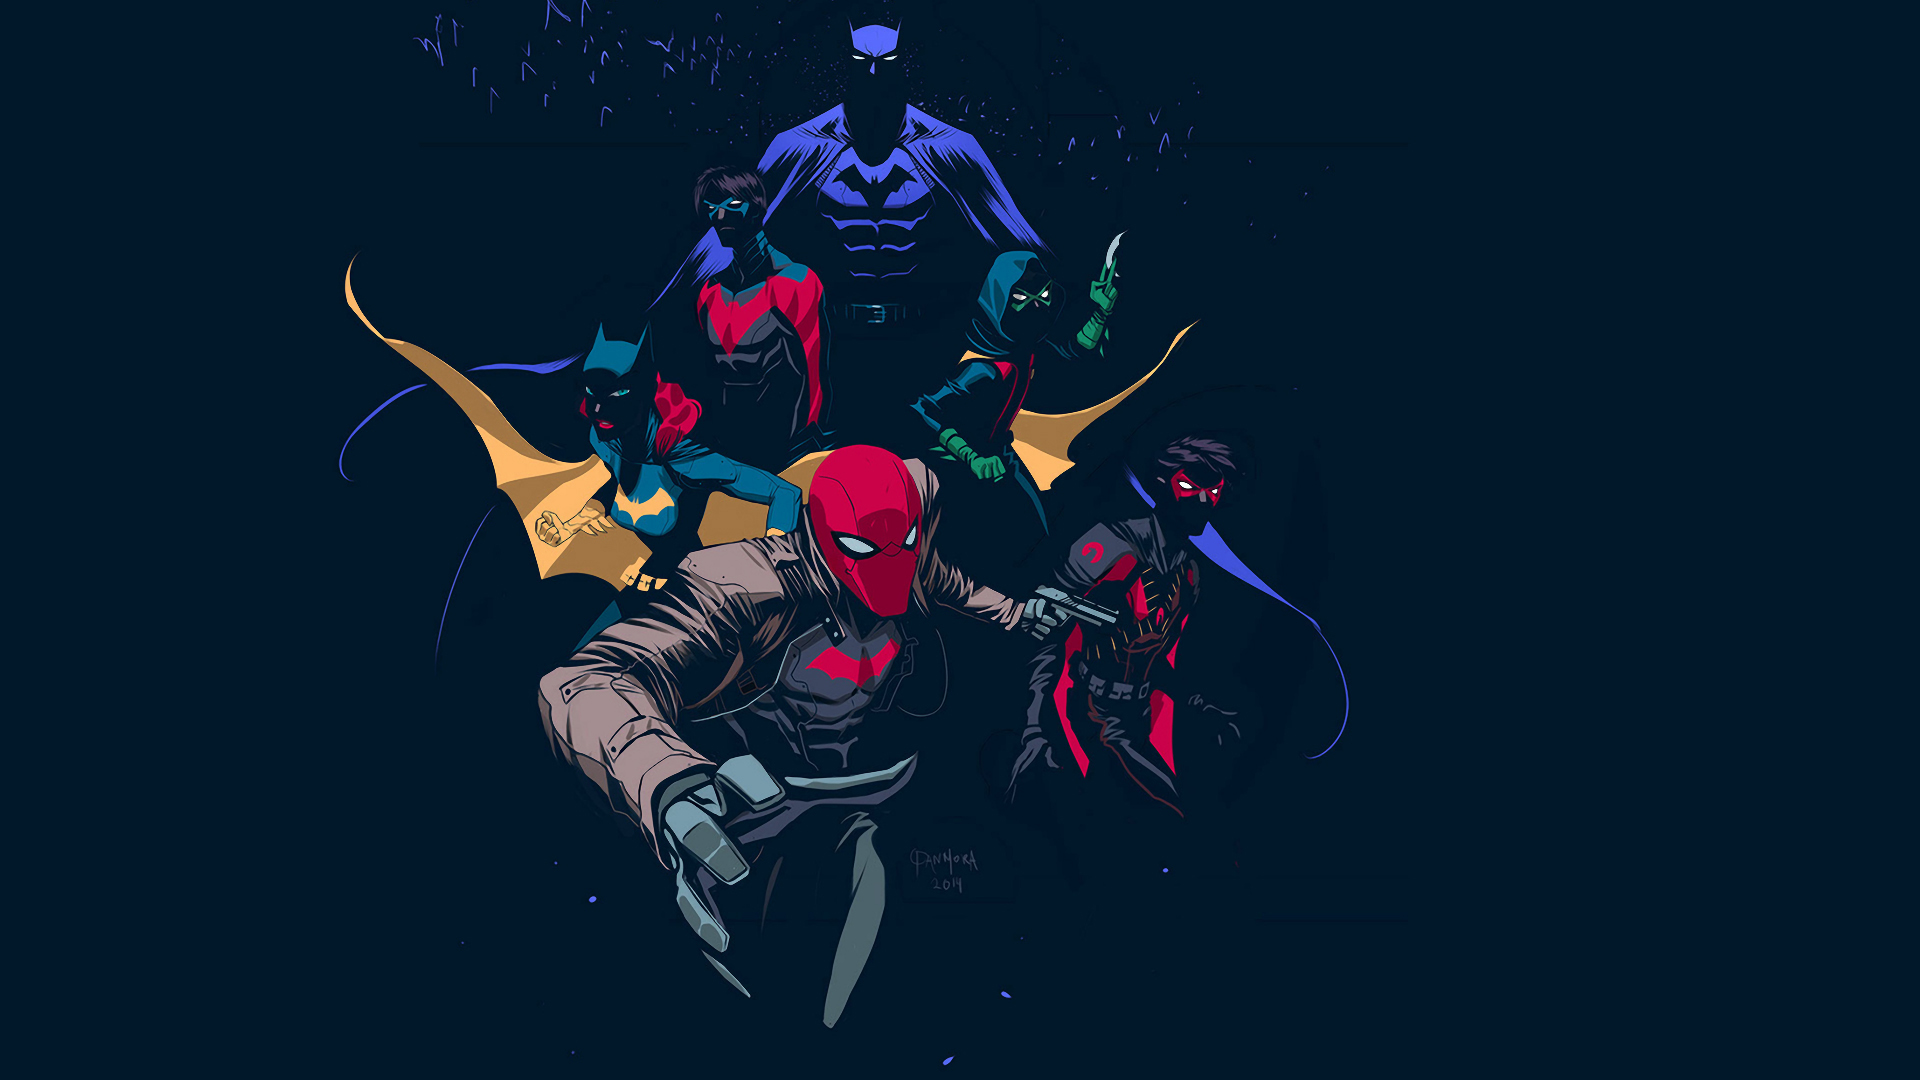 Bat Family Wallpaper Collection 8 Wallpapers HD Wallpapers Download Free Images Wallpaper [1000image.com]